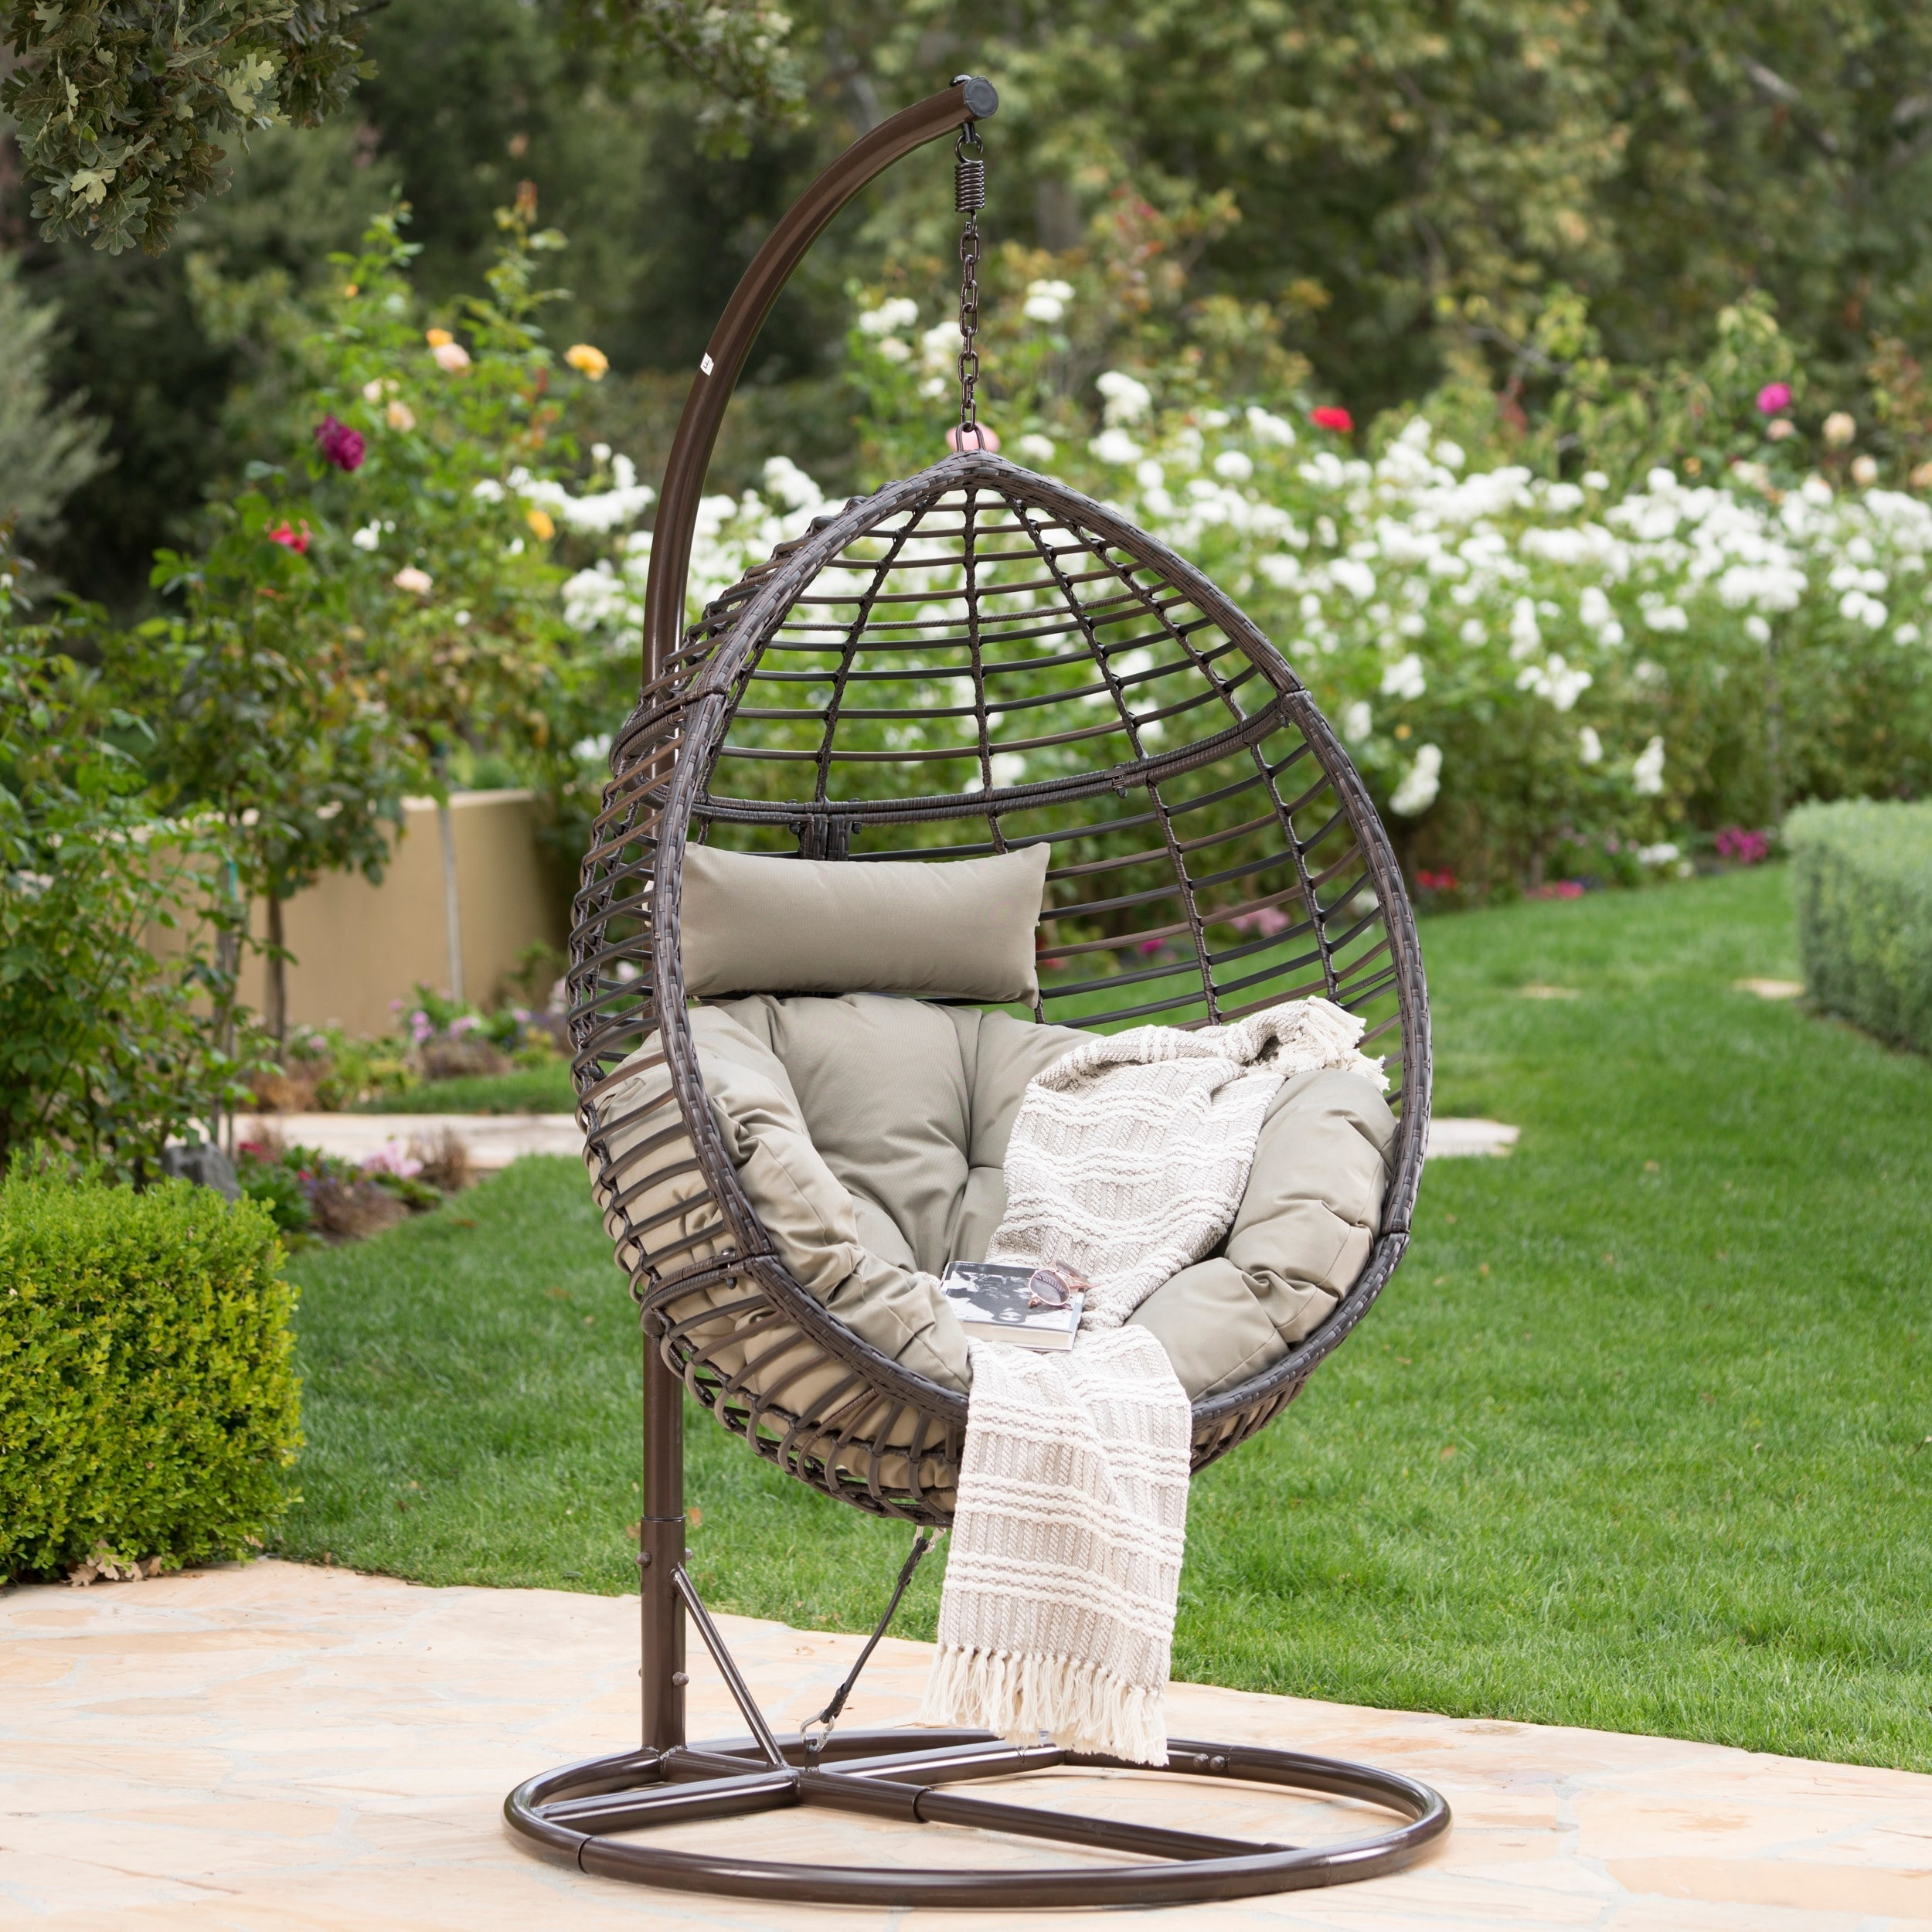 Hanging Outdoor Chairs Layla Outdoor Wicker Hanging Basket Chair With Cushions By Christopher Knight Home